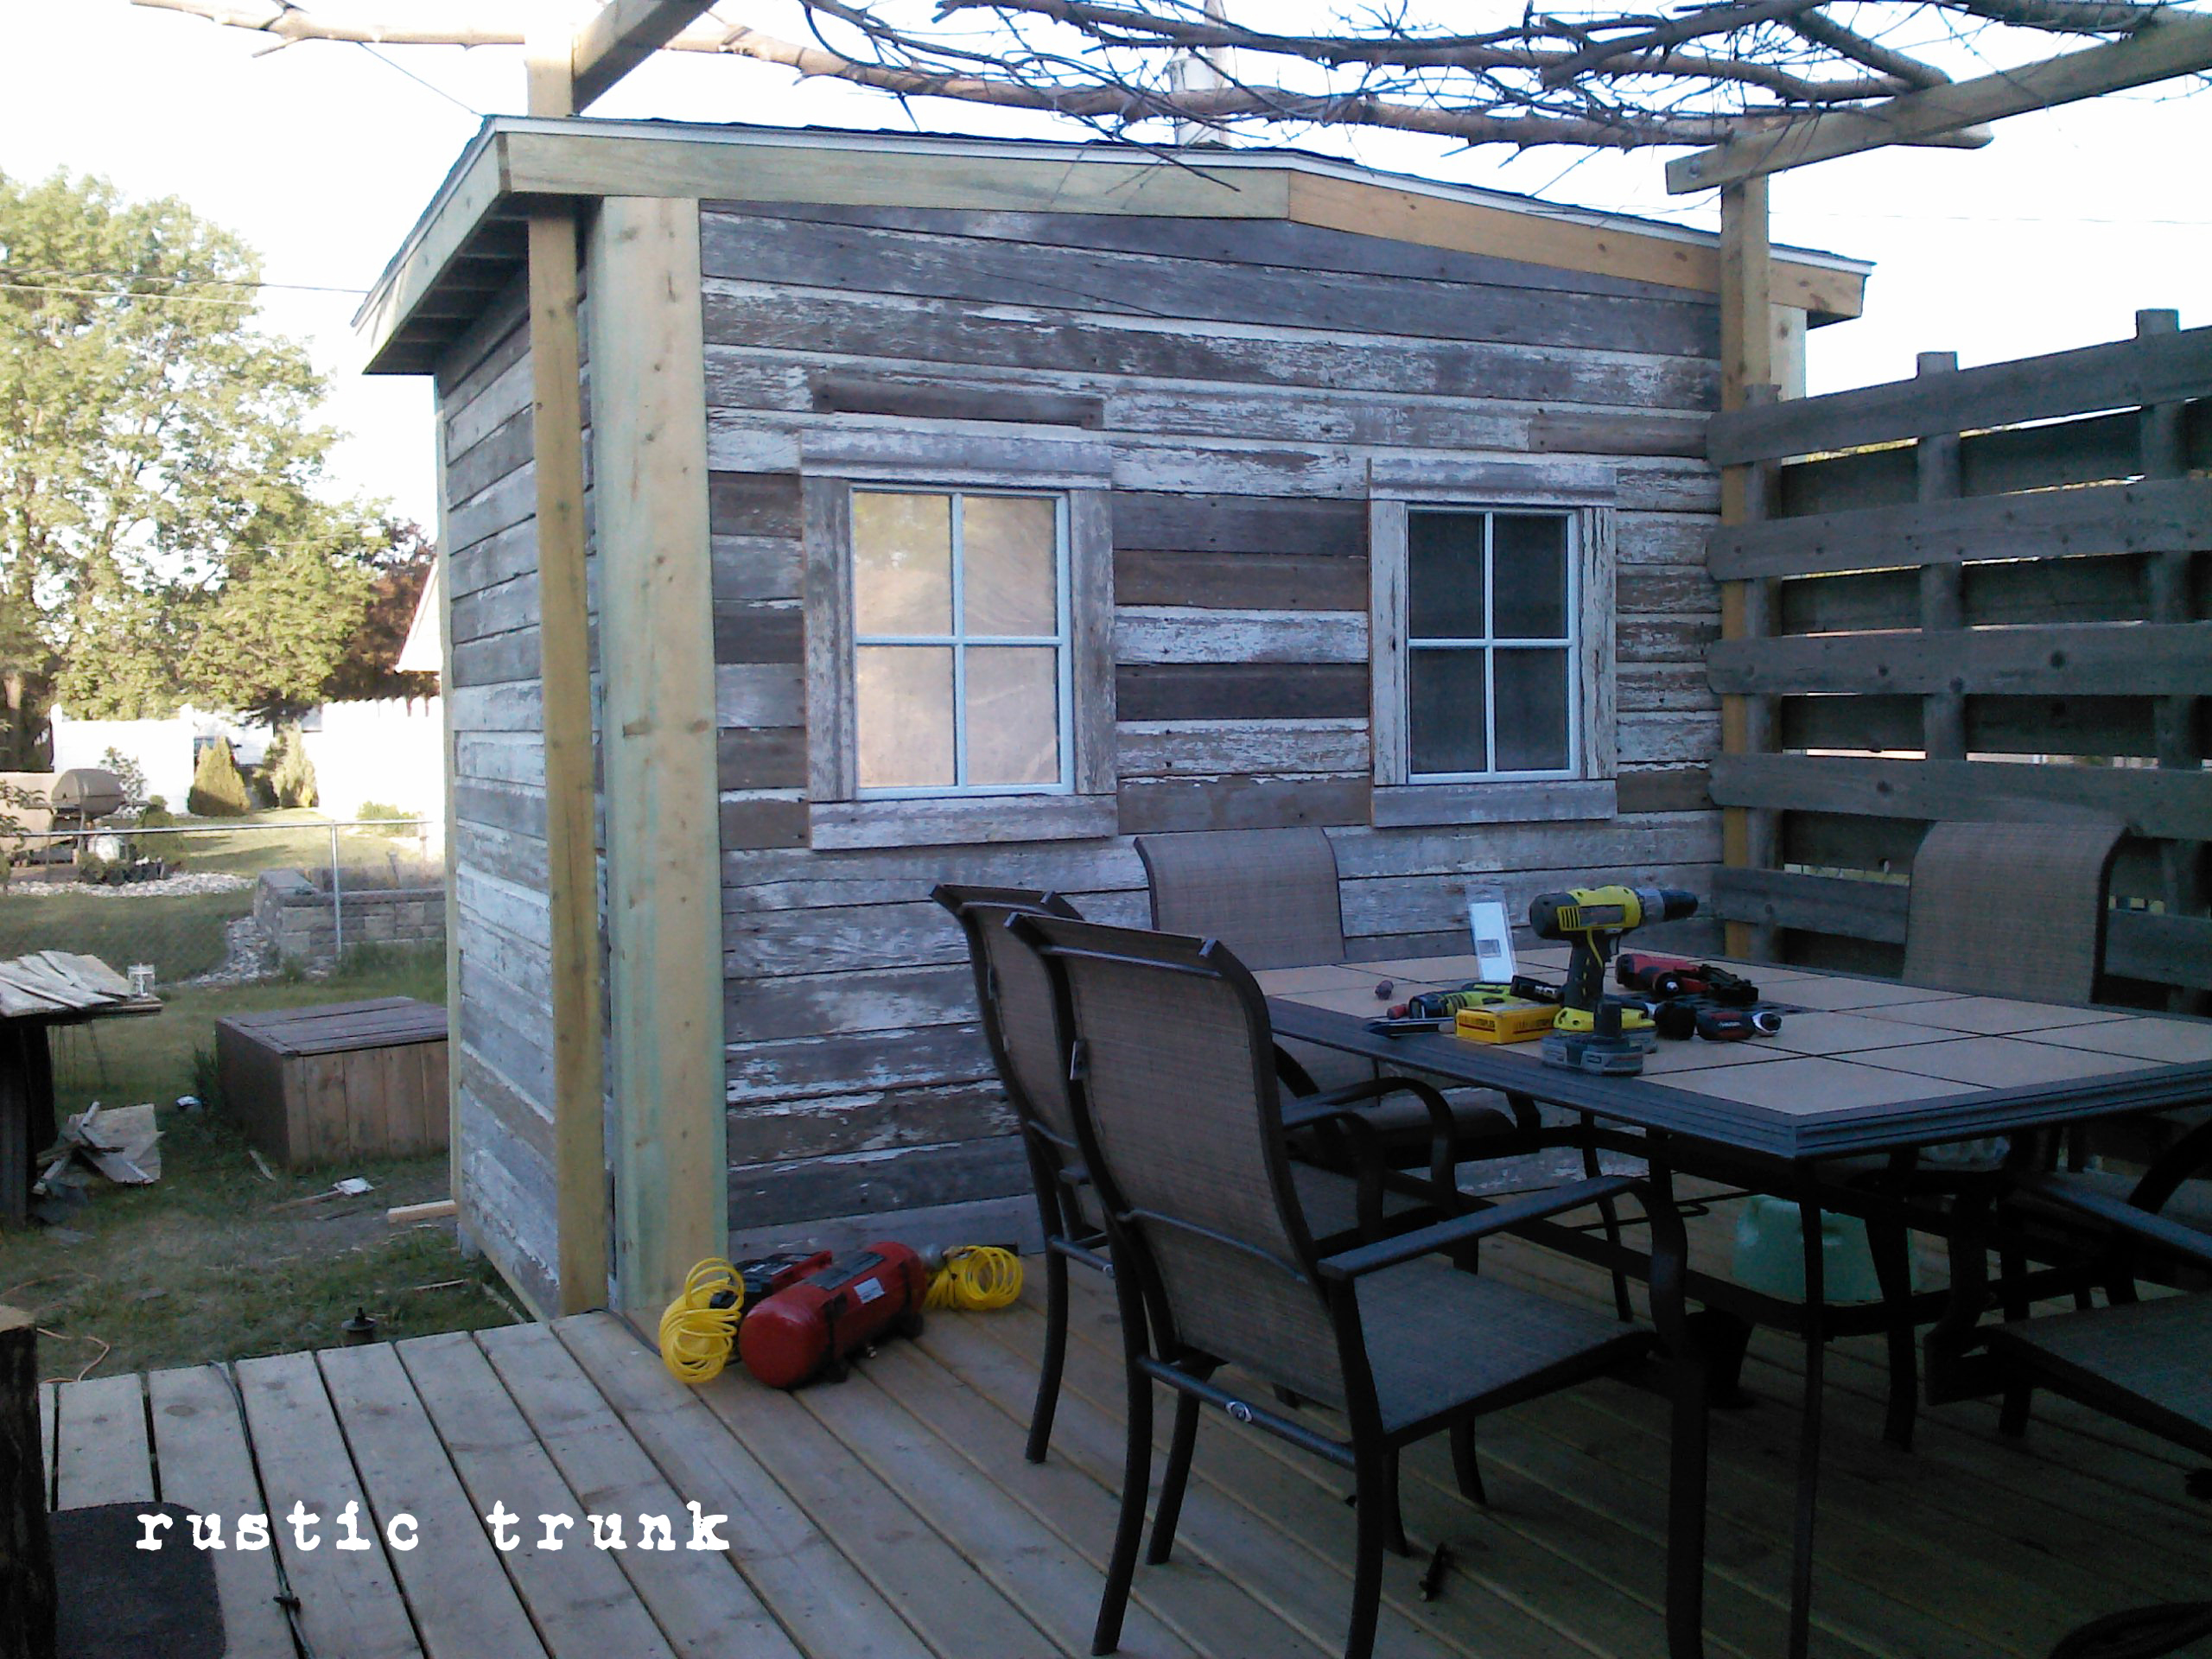 E084957b81f270b8 moreover Reclaimed Barn Wood Adds Rustic Charm Homes moreover ment Vivre Legalement Sur Un Terrain Agricole likewise Barn Sheds To Live In also Woot Look At The Size Of That Summerhouseshedcabinwhatever The Heck It Is. on barn turned into home